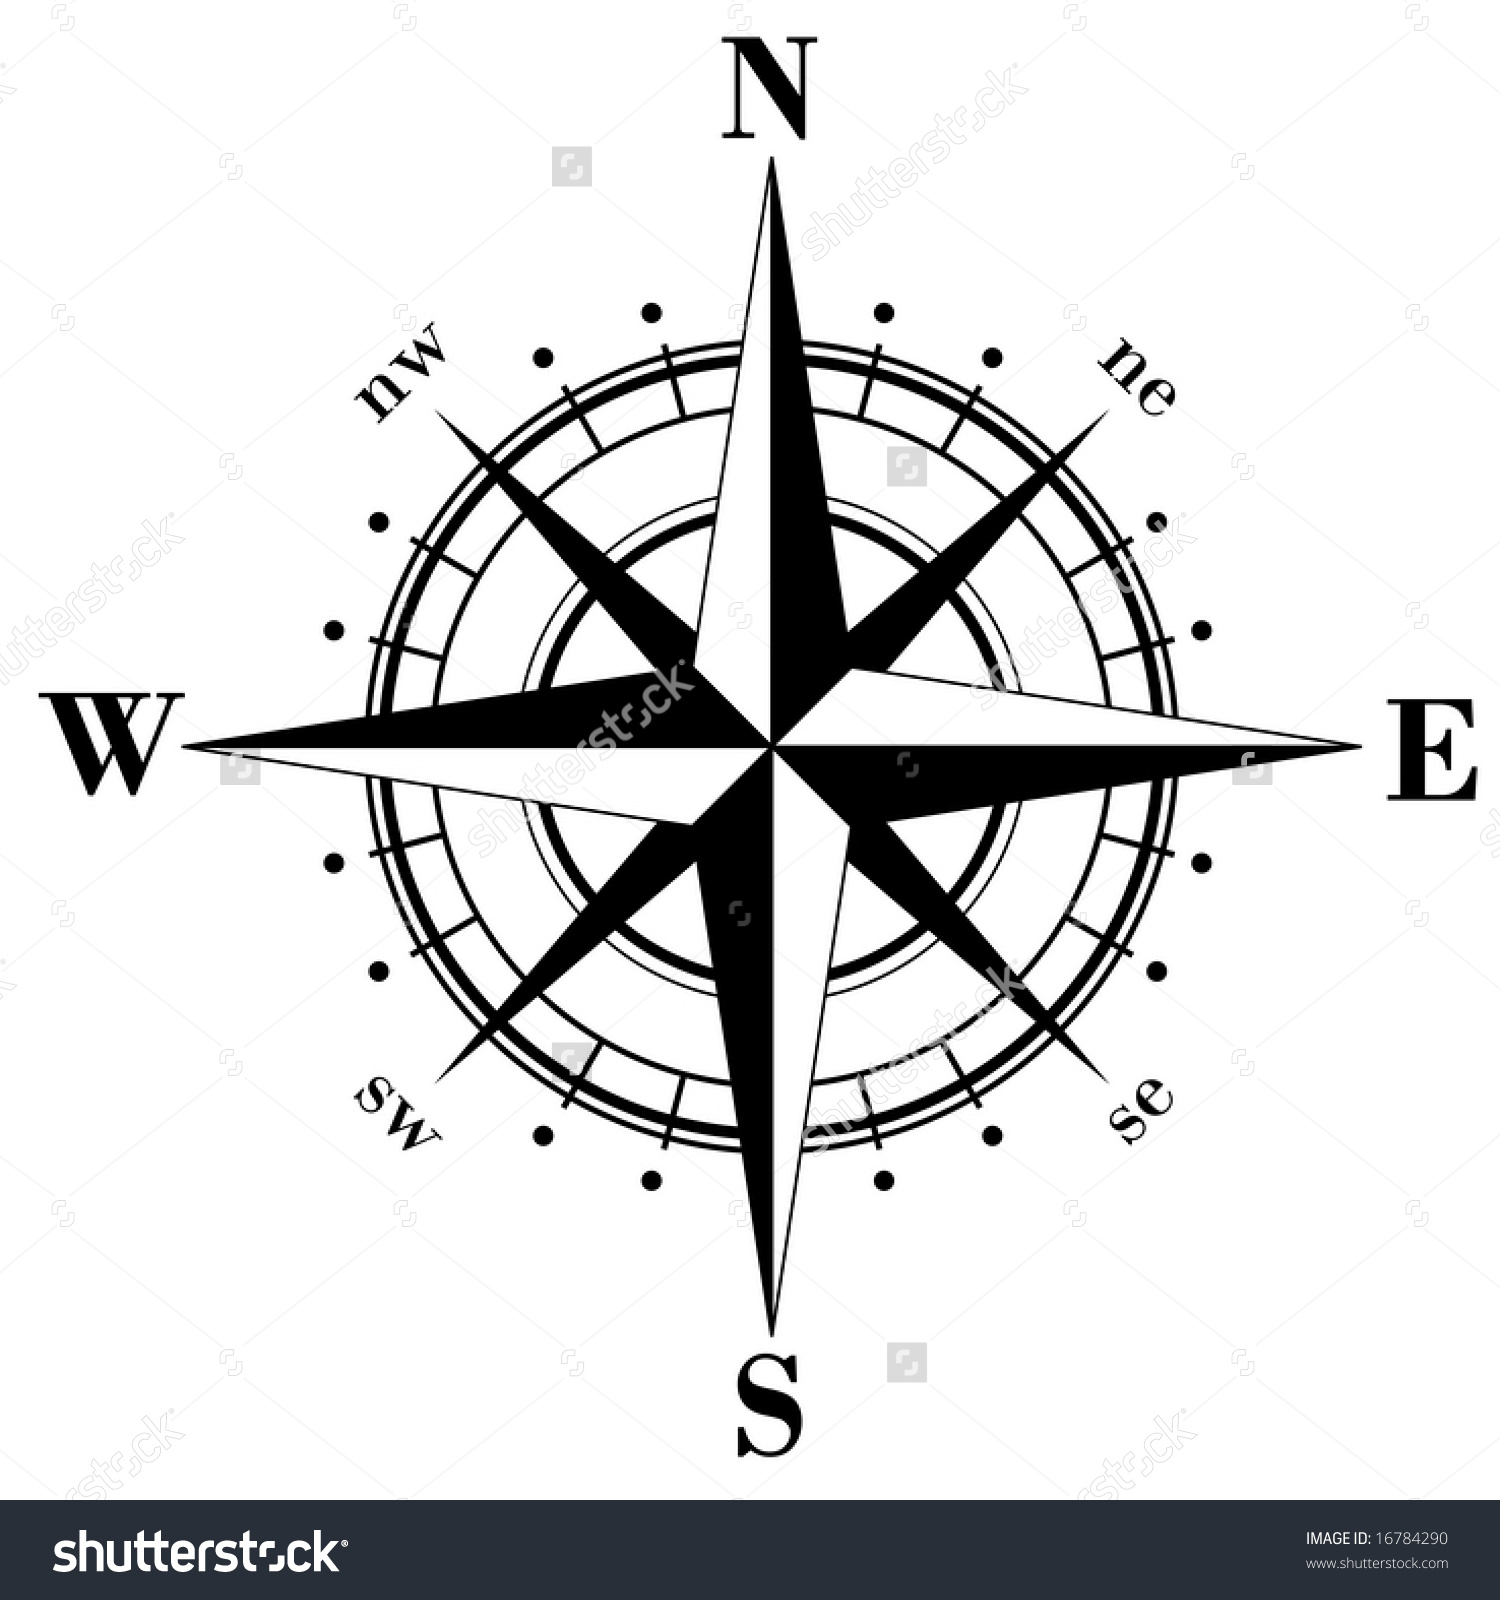 North east west south symbol image collections symbol and sign ideas 20 vector compass rose images compass rose vector compass rose compass rose vector buycottarizona biocorpaavc